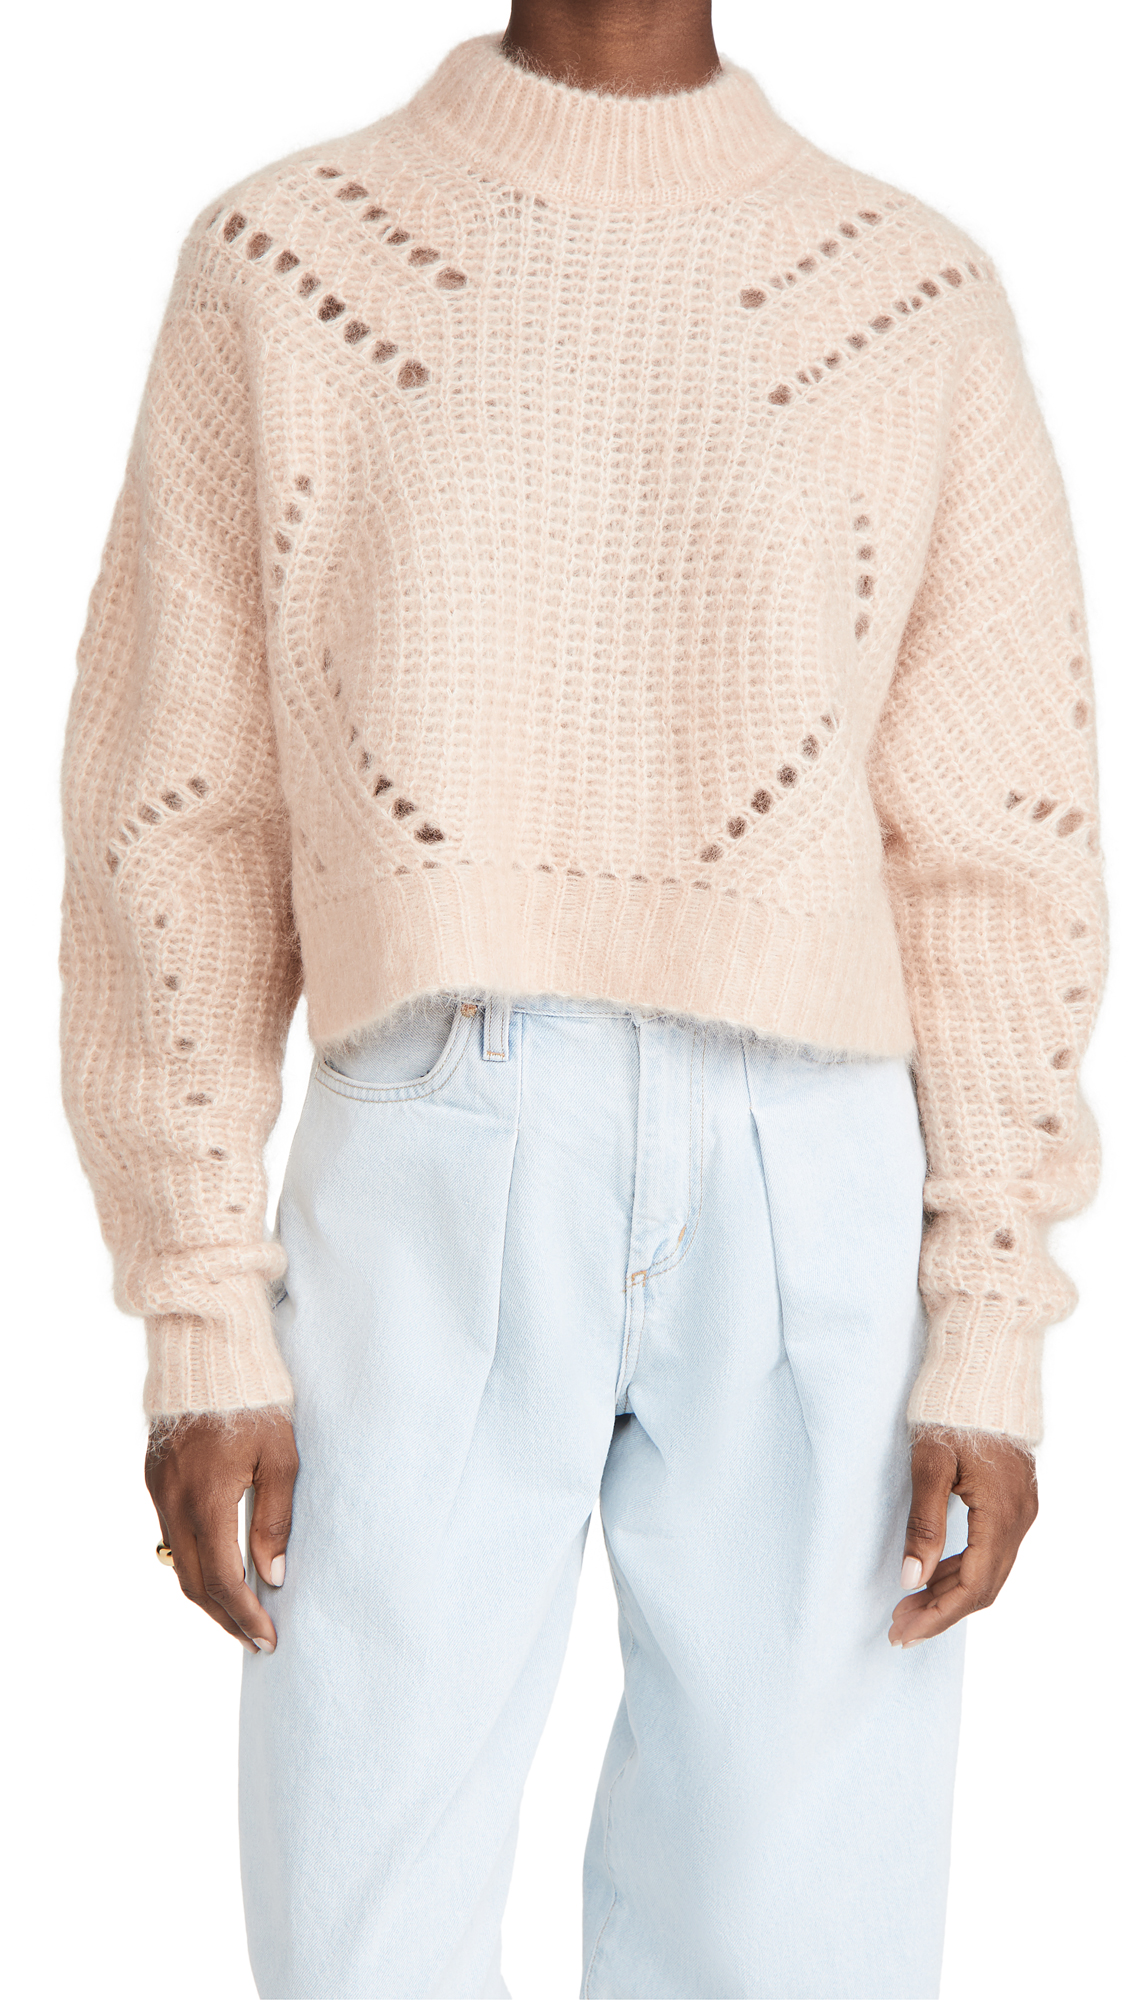 ANINE BING Jordan Sweater